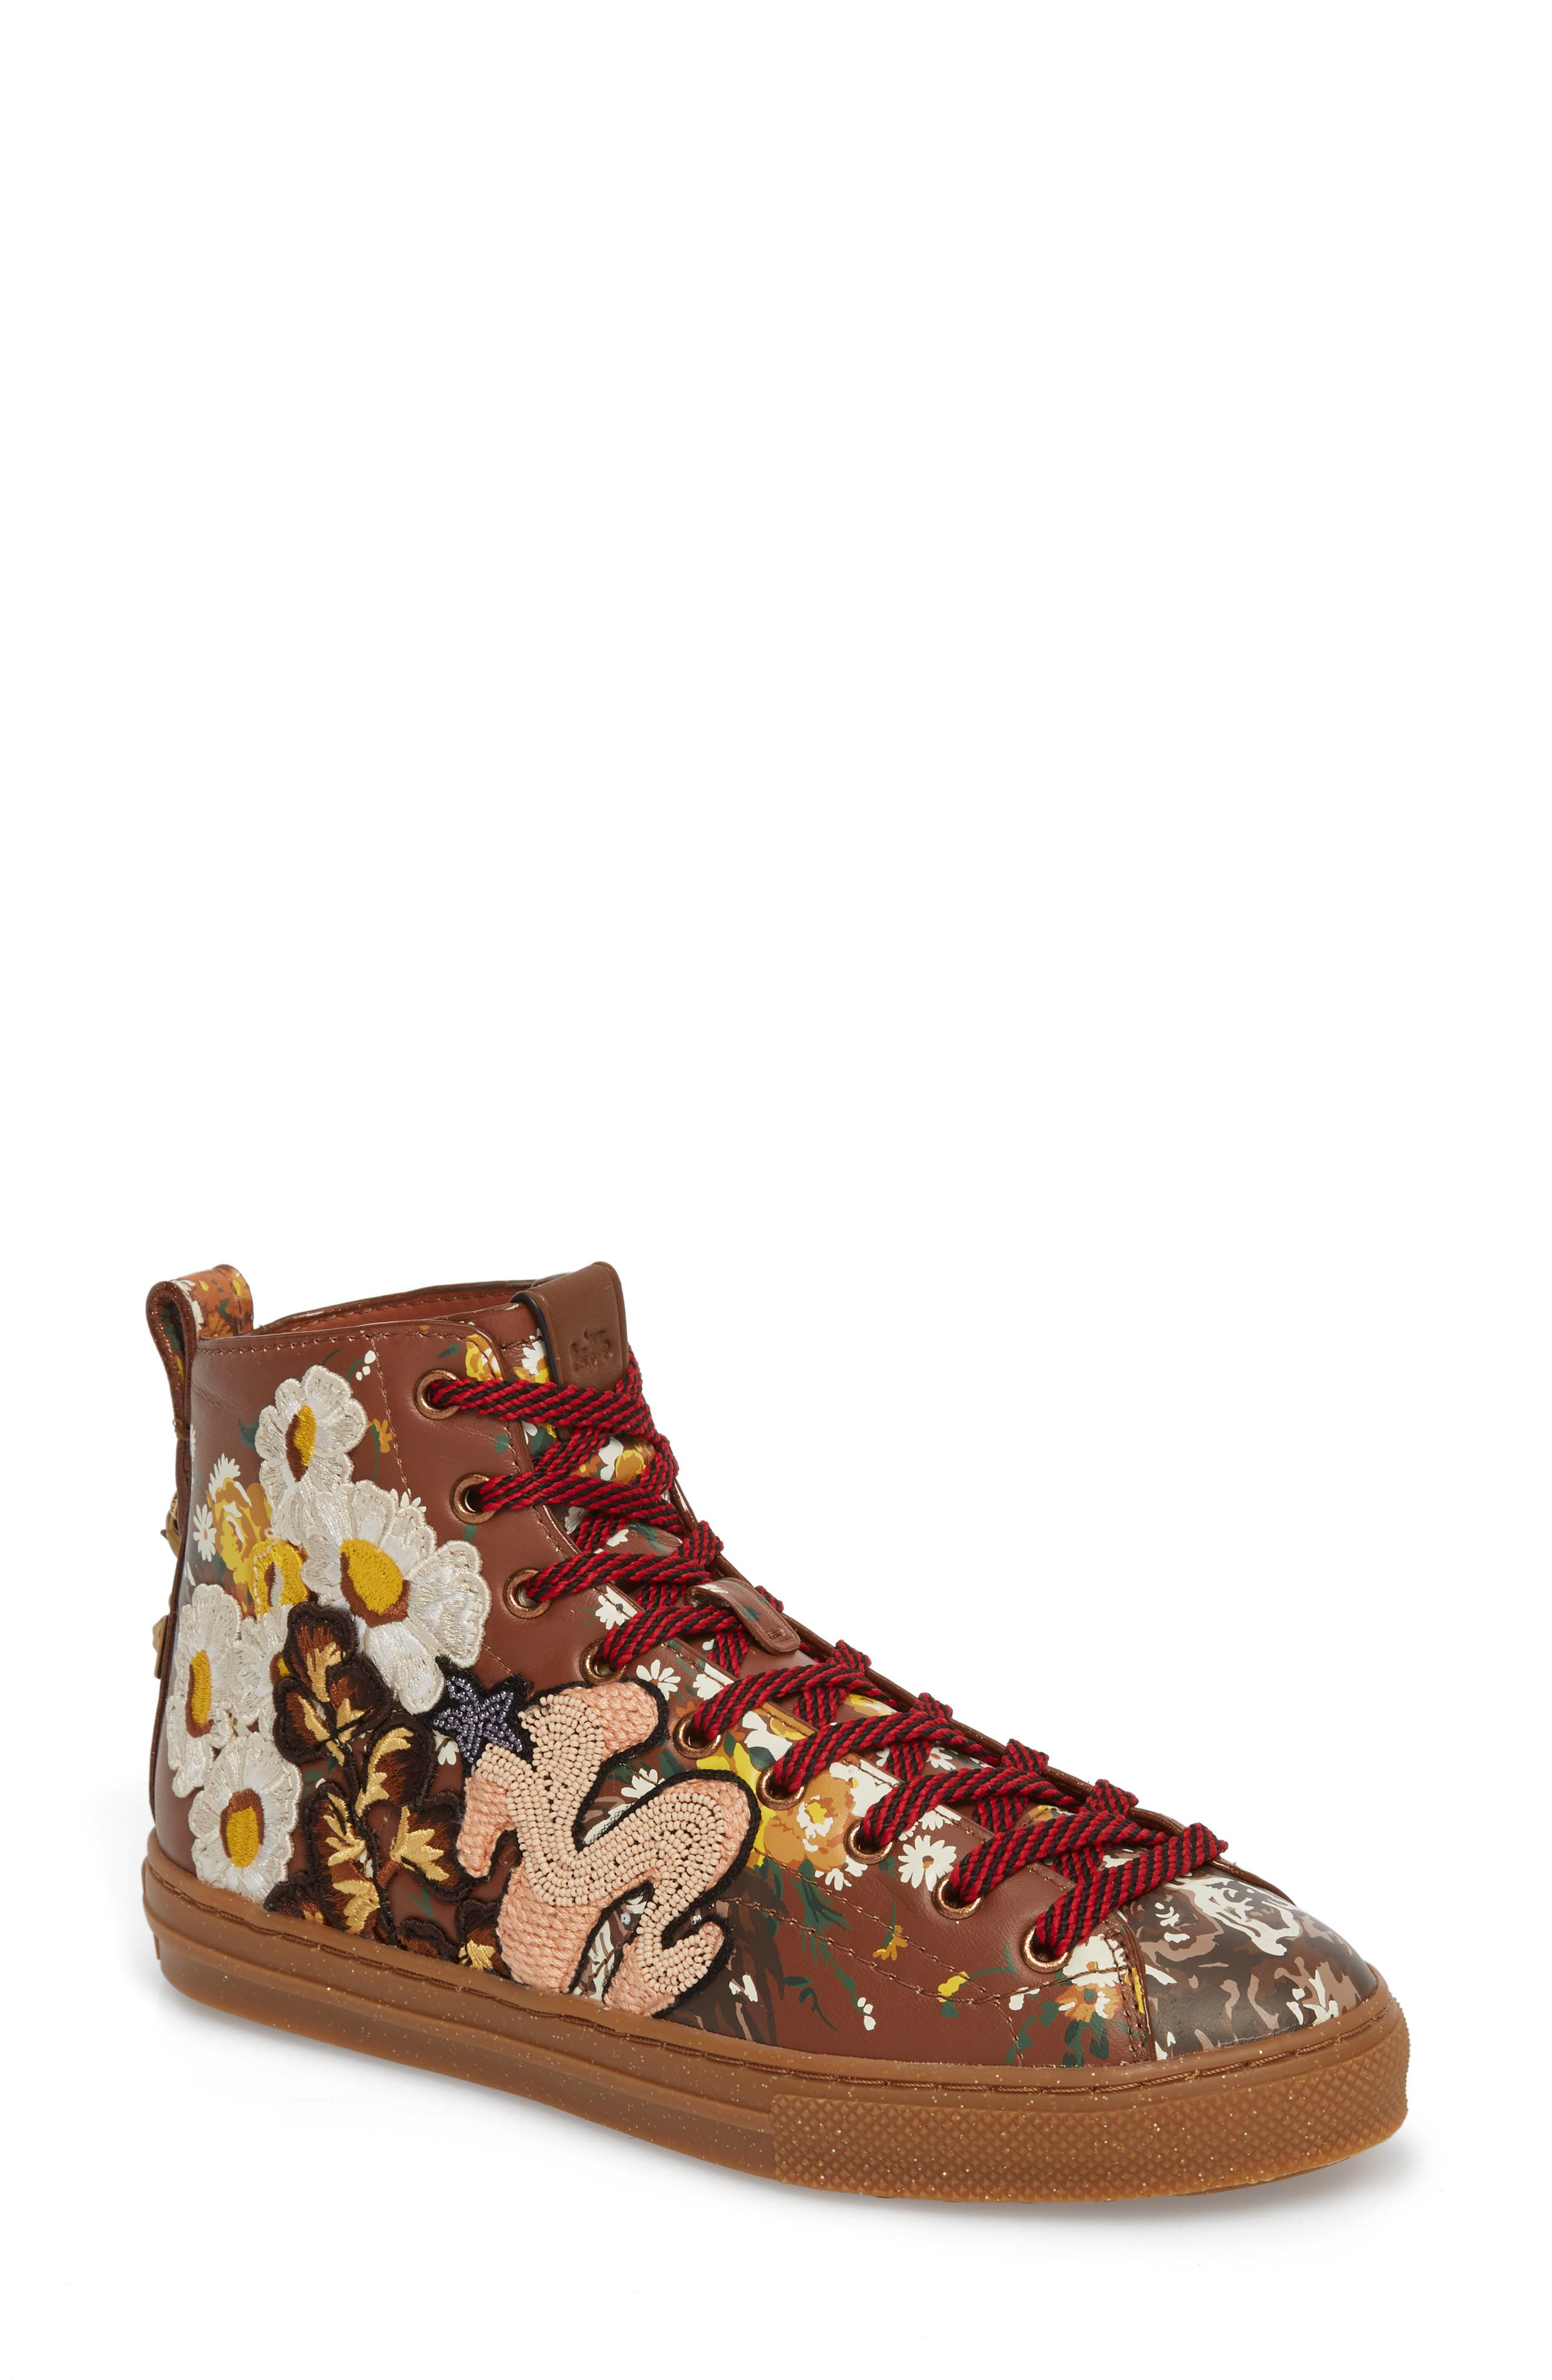 Flower Patch High Top Sneaker,                             Main thumbnail 1, color,